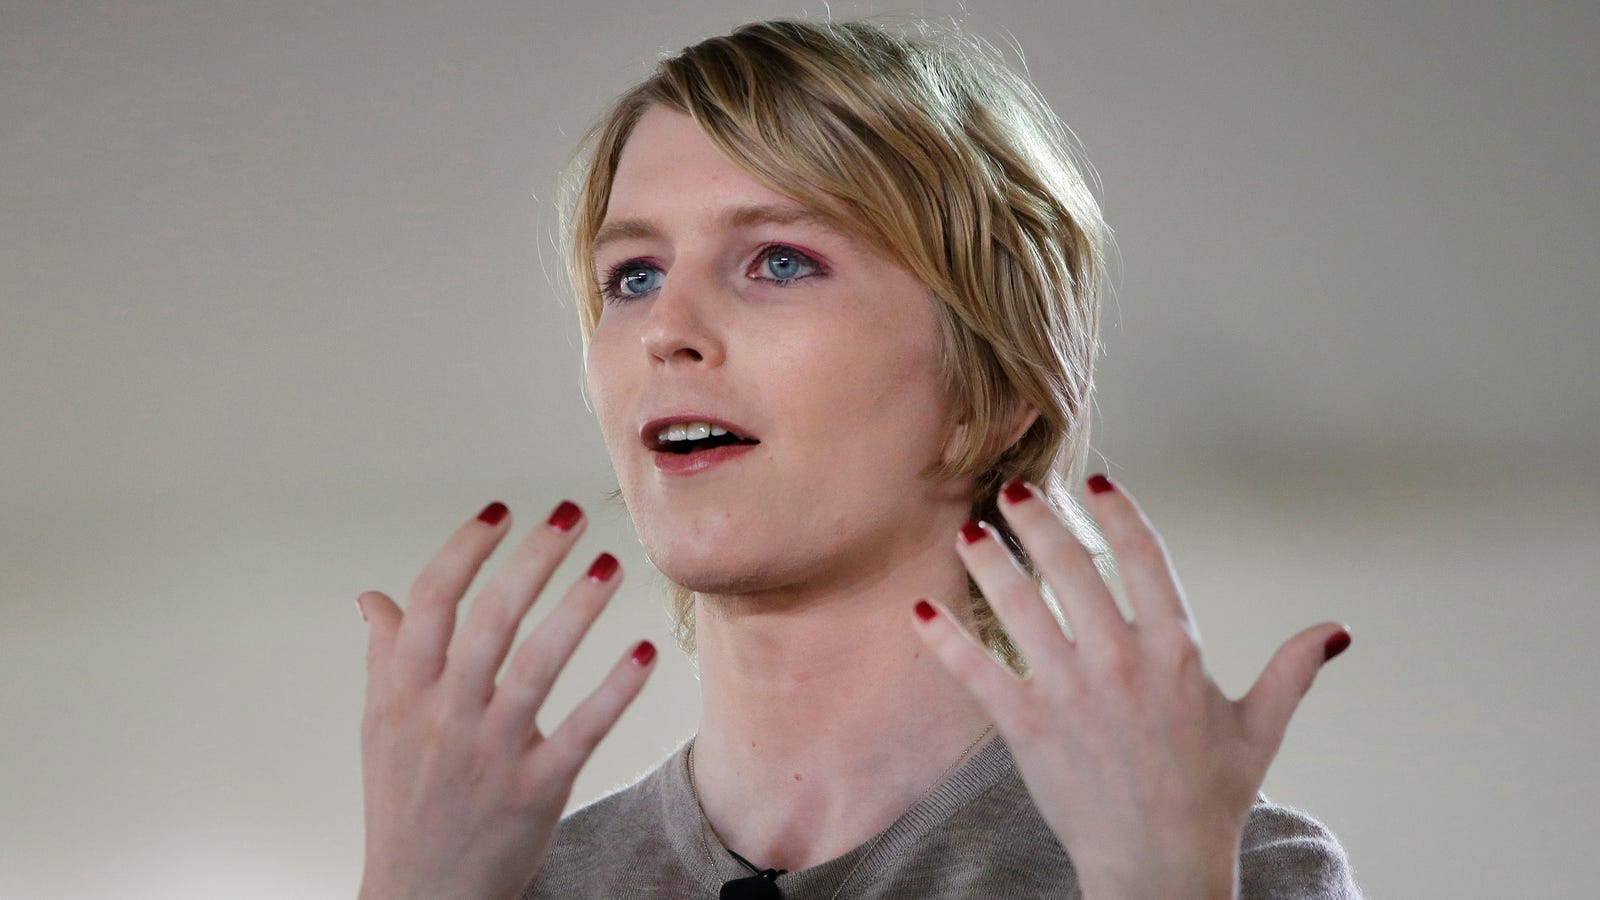 Chelsea Manning Files Documents to Run For Senate